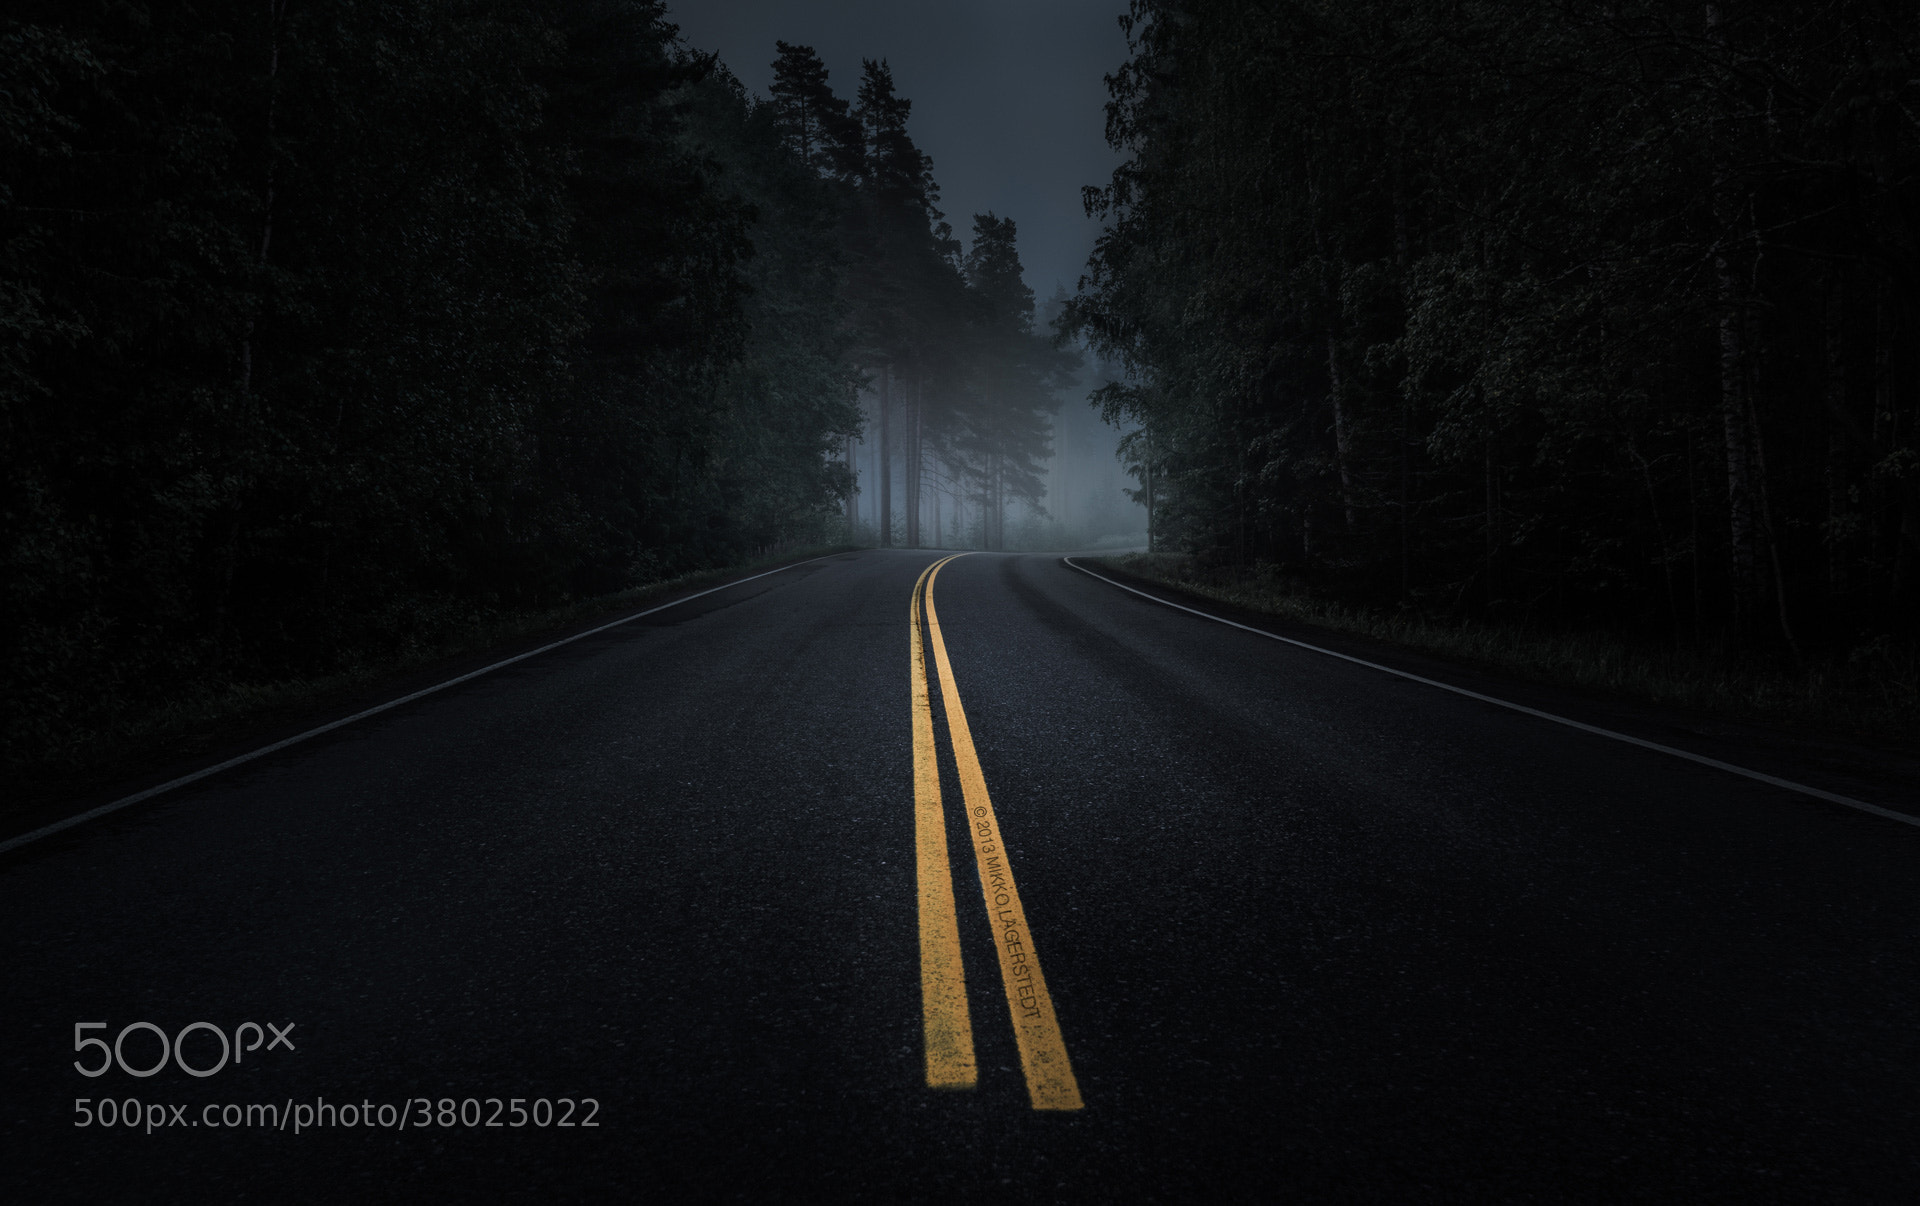 Photograph On My Way by Mikko Lagerstedt on 500px